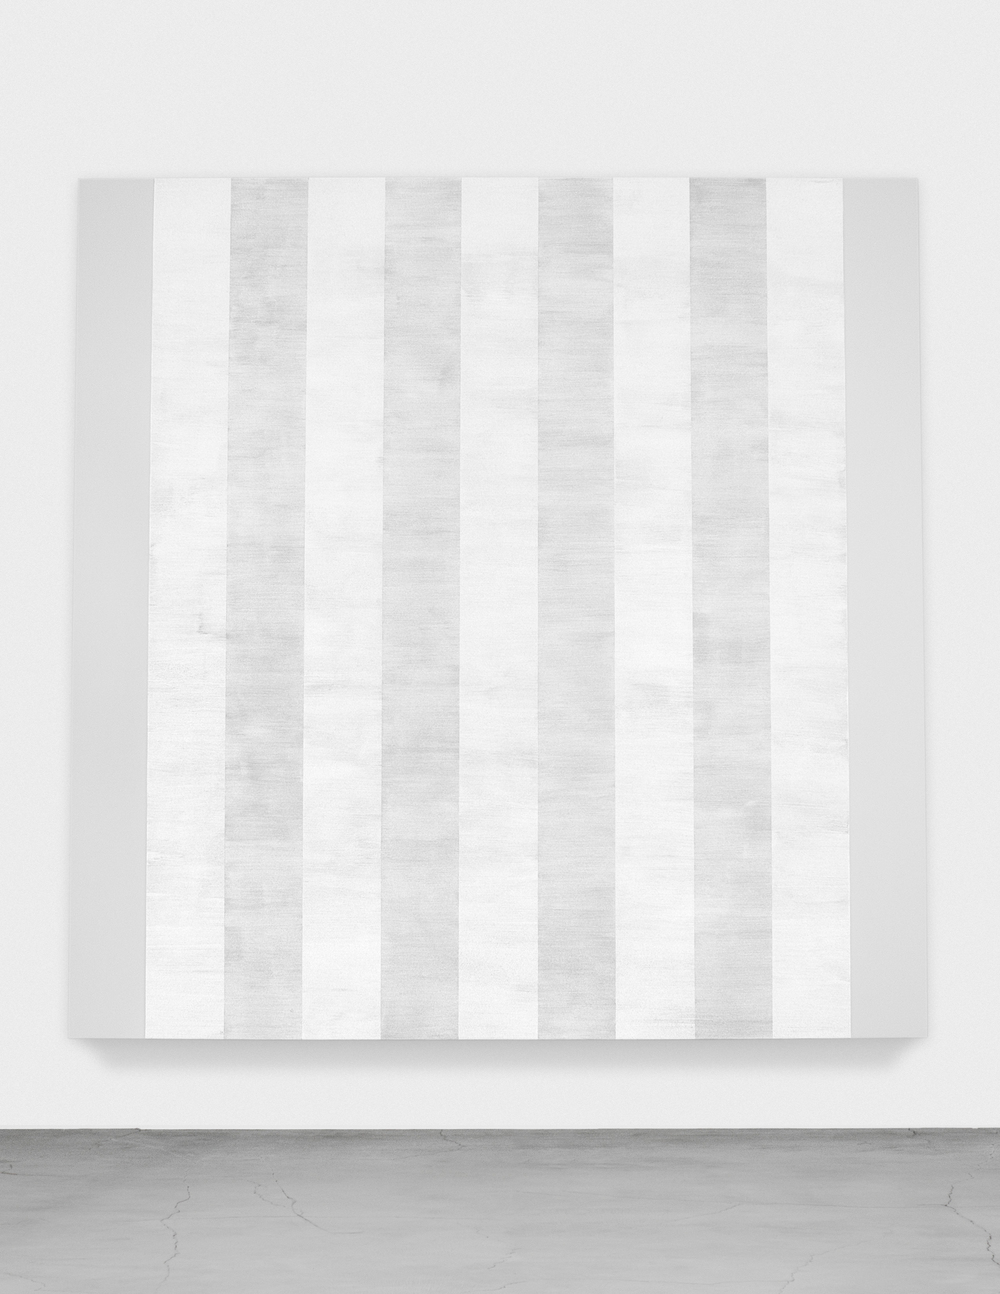 Untitled (White Multiple Inner Bands, Beveled) , 2011  Glass Microspheres In Acrylic On Canvas 8' (H) X 8' (W) Ace Gallery